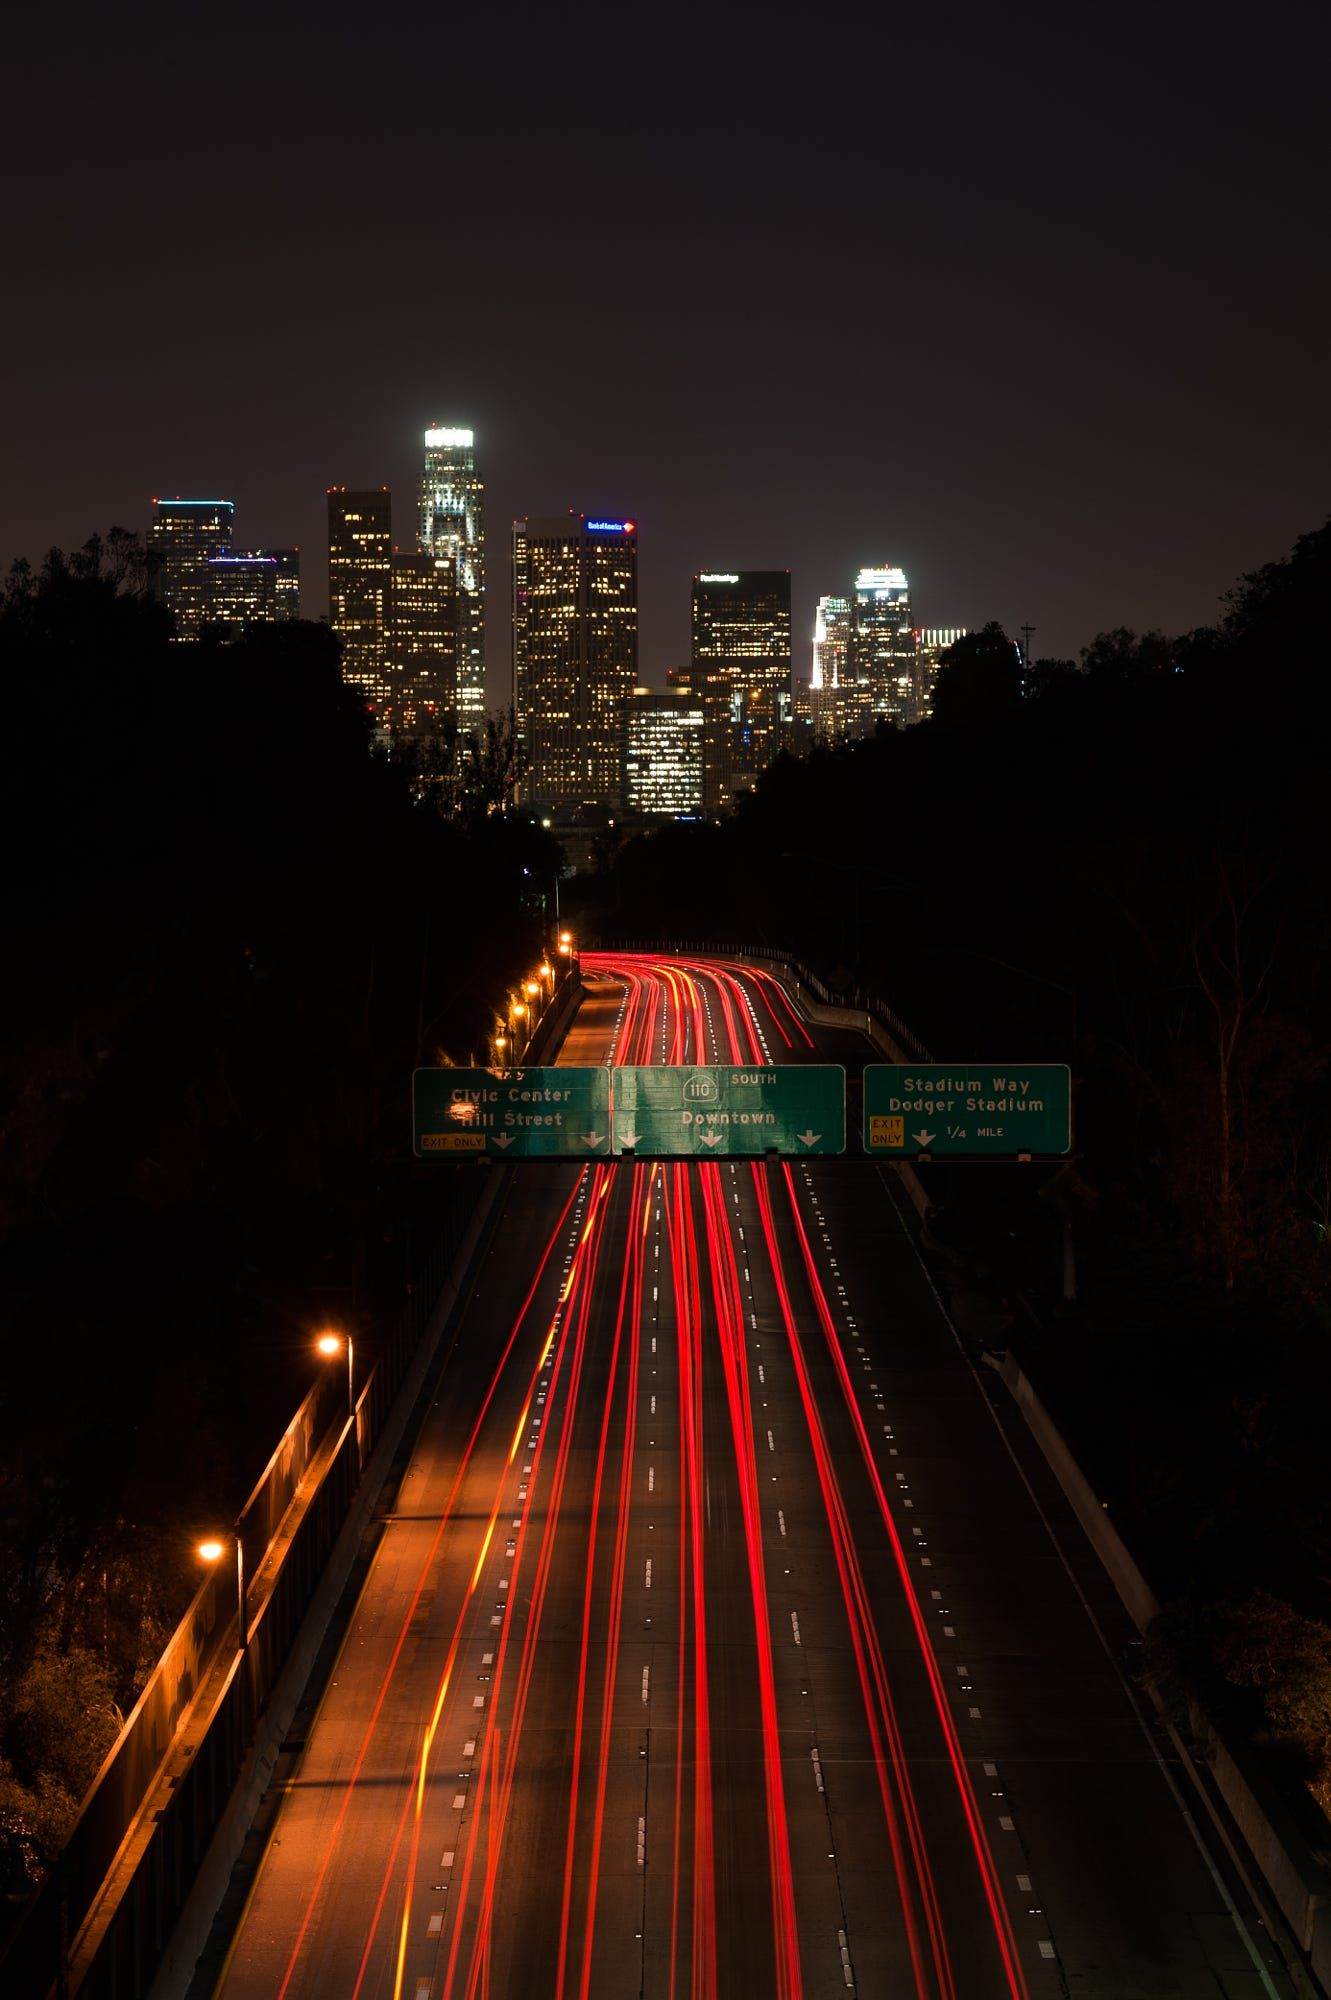 The 110 Freeway Heading Towards Downtown Los Angeles At An Overpass In Elysian Park North Of Downtown Urban Landscape Downtown Los Angeles Landscape